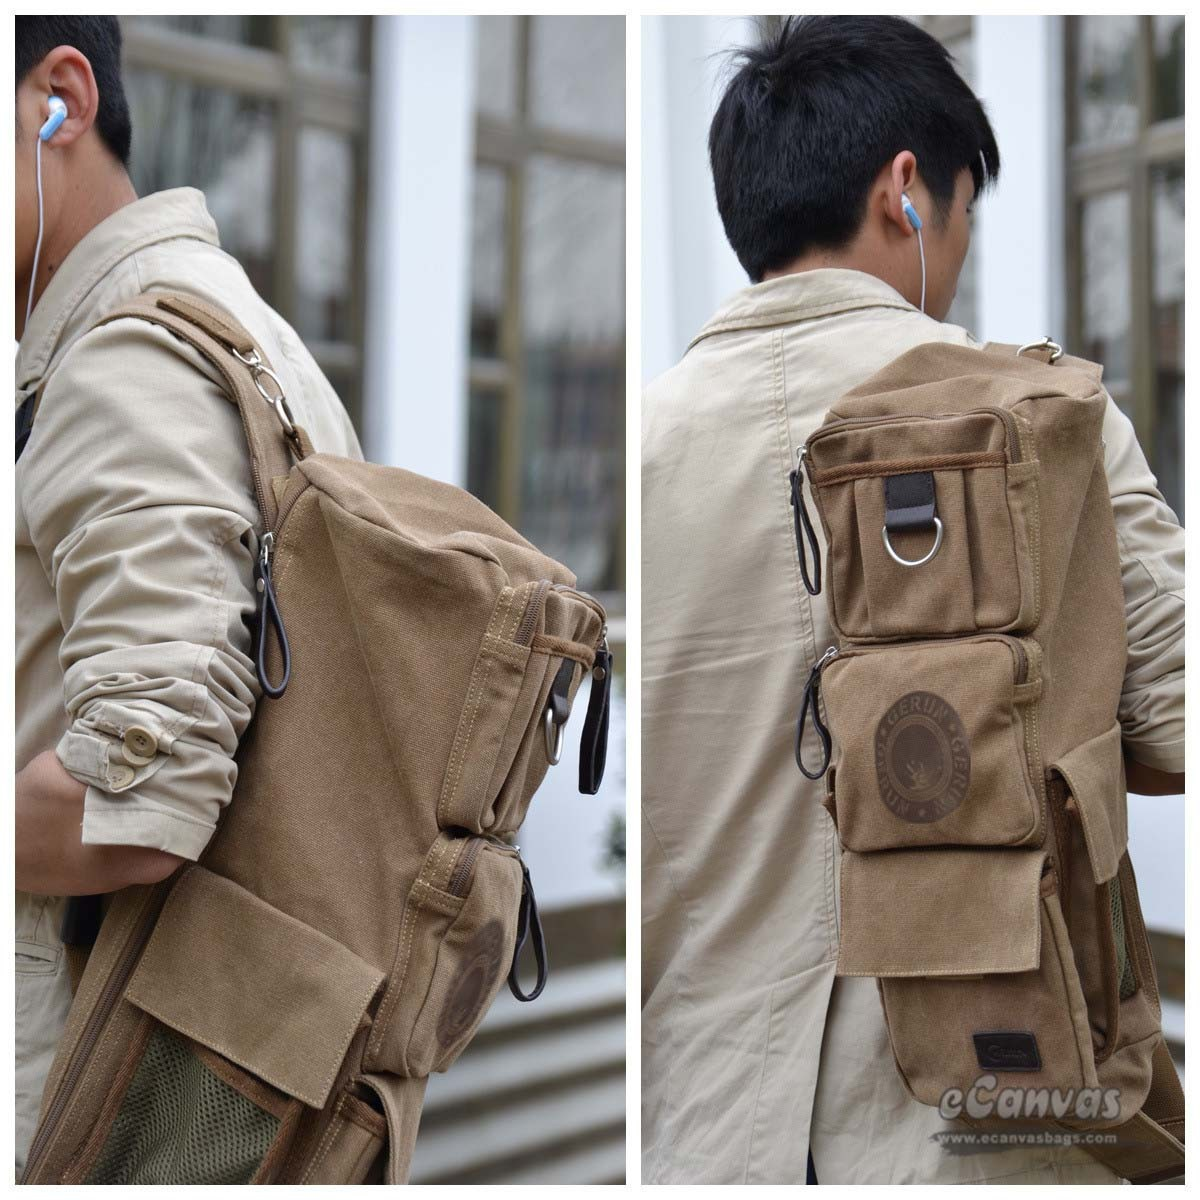 Jeep Wave Hand High Five Vintage Rucksack Backpack With Leather Straps Khaki